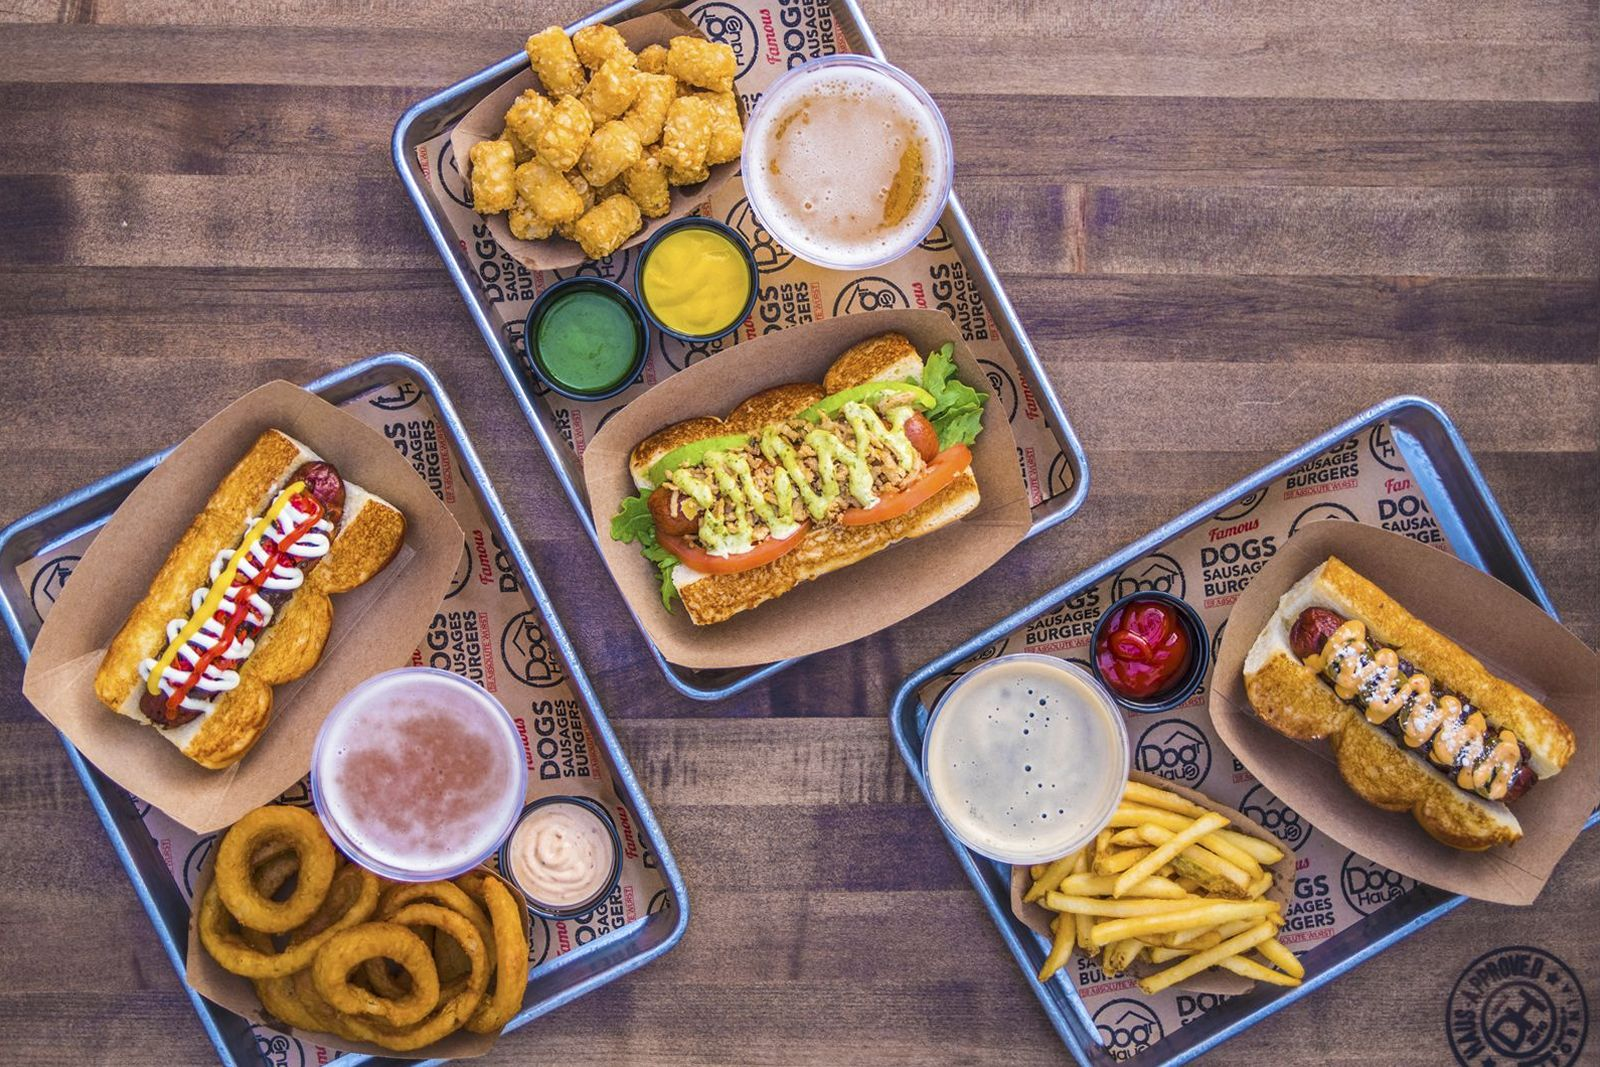 Dog Haus is at the Forefront of the Virtual Kitchen Movement